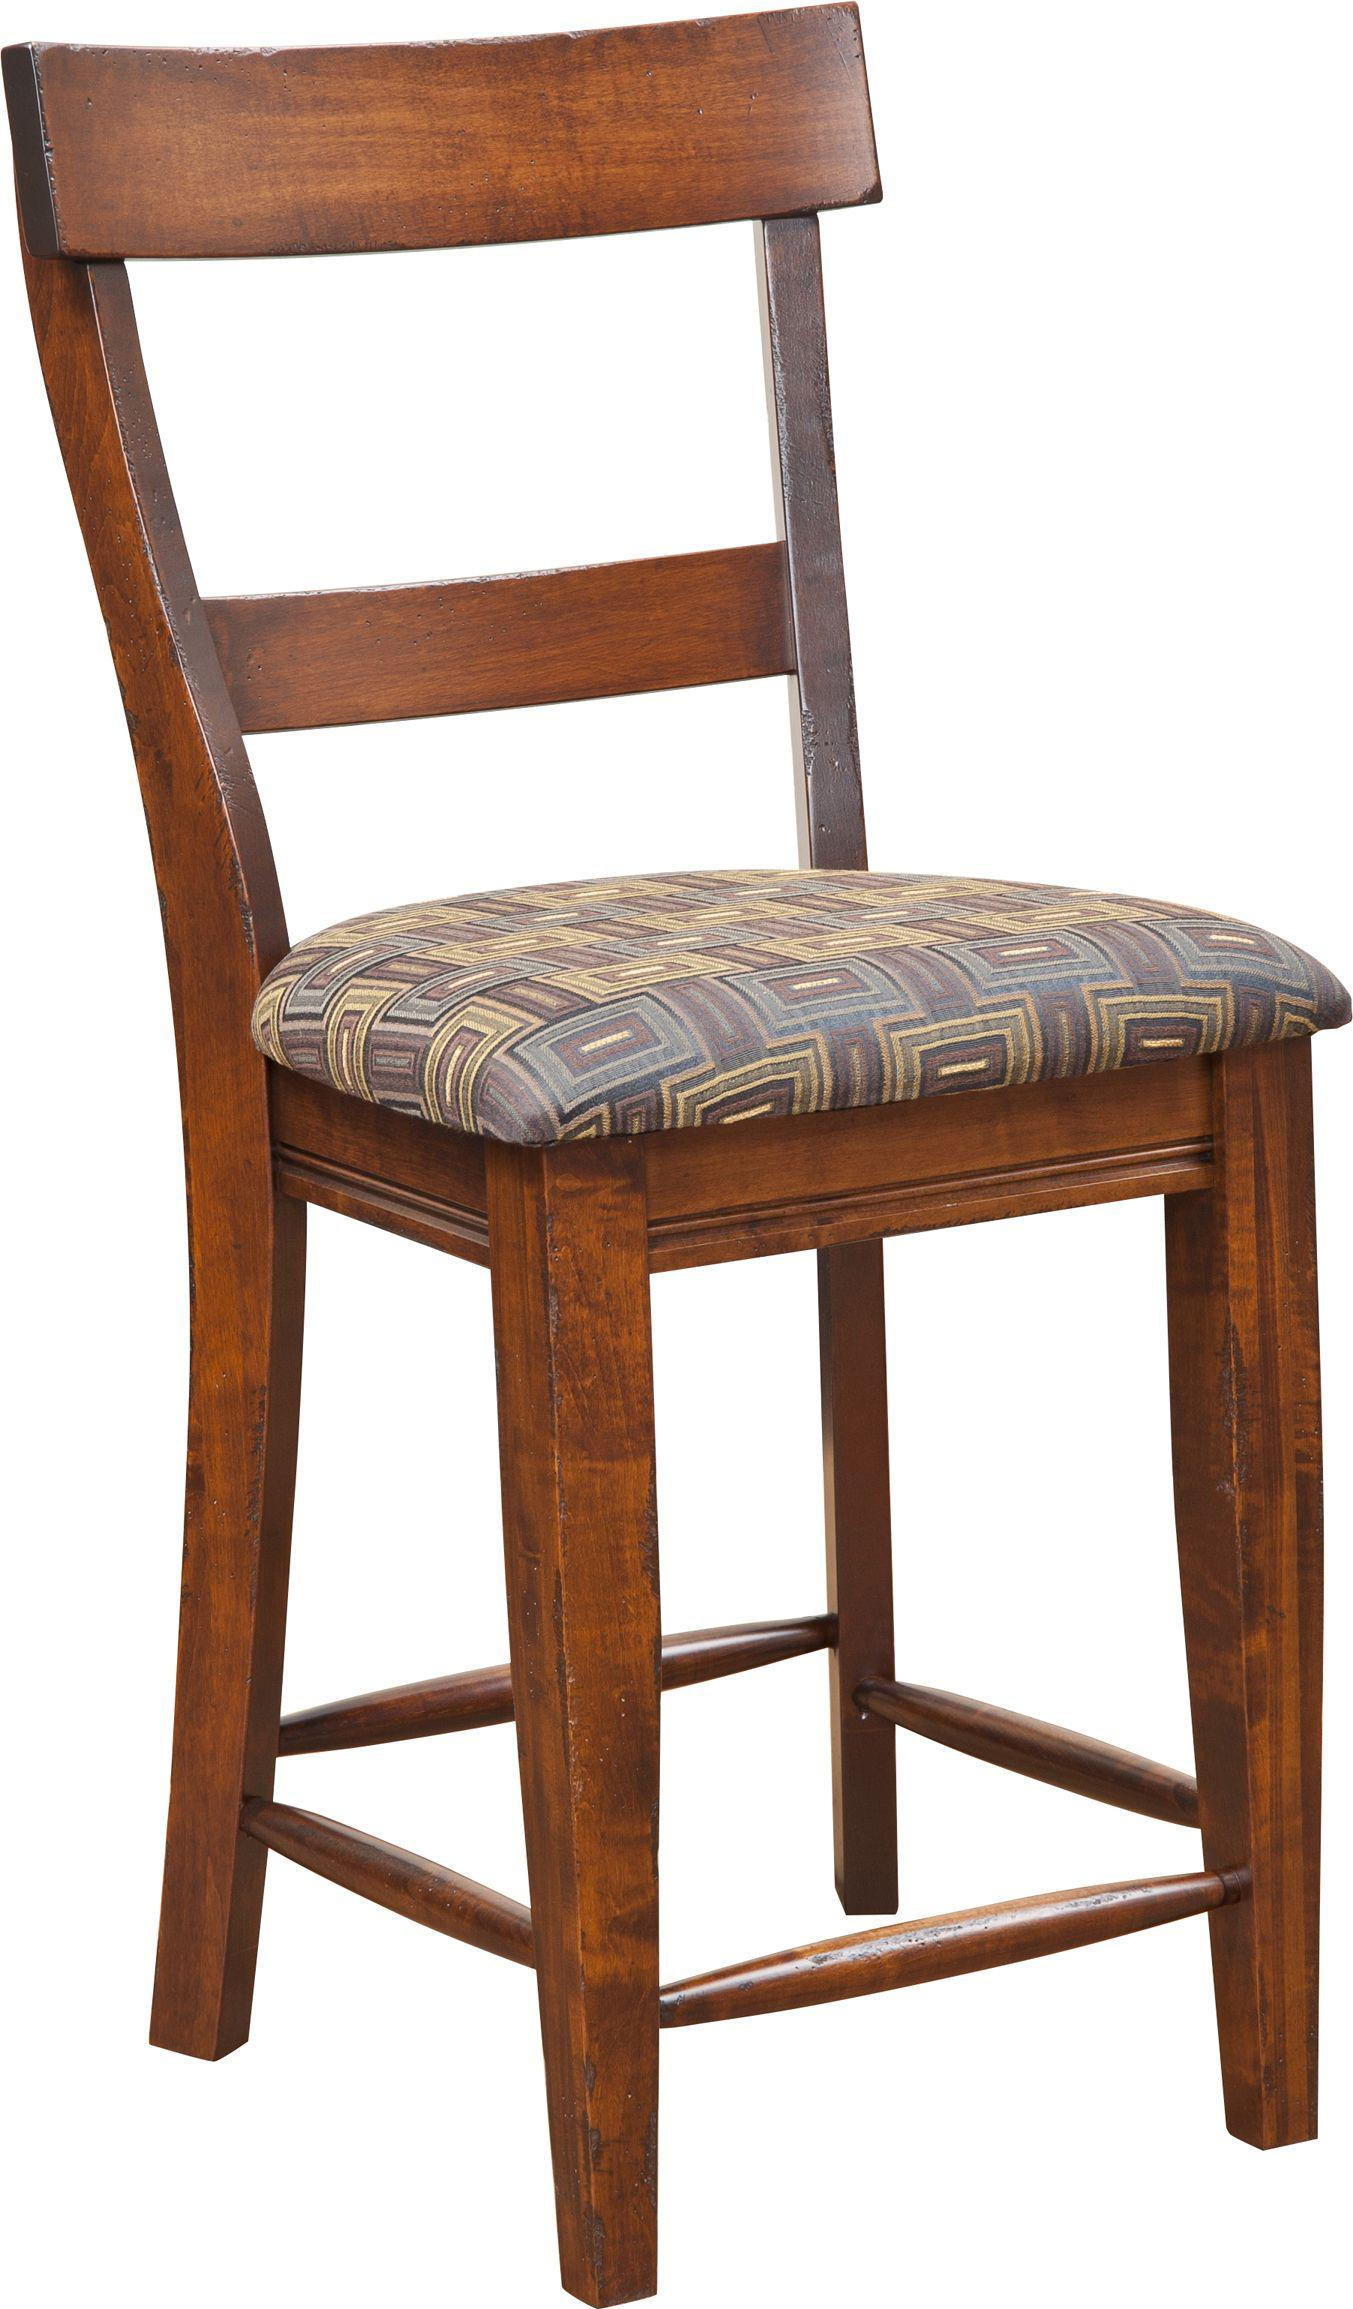 Bar Chairs Lewiston Bar Chair by Amish Impressions by Fusion Designs at Mueller Furniture